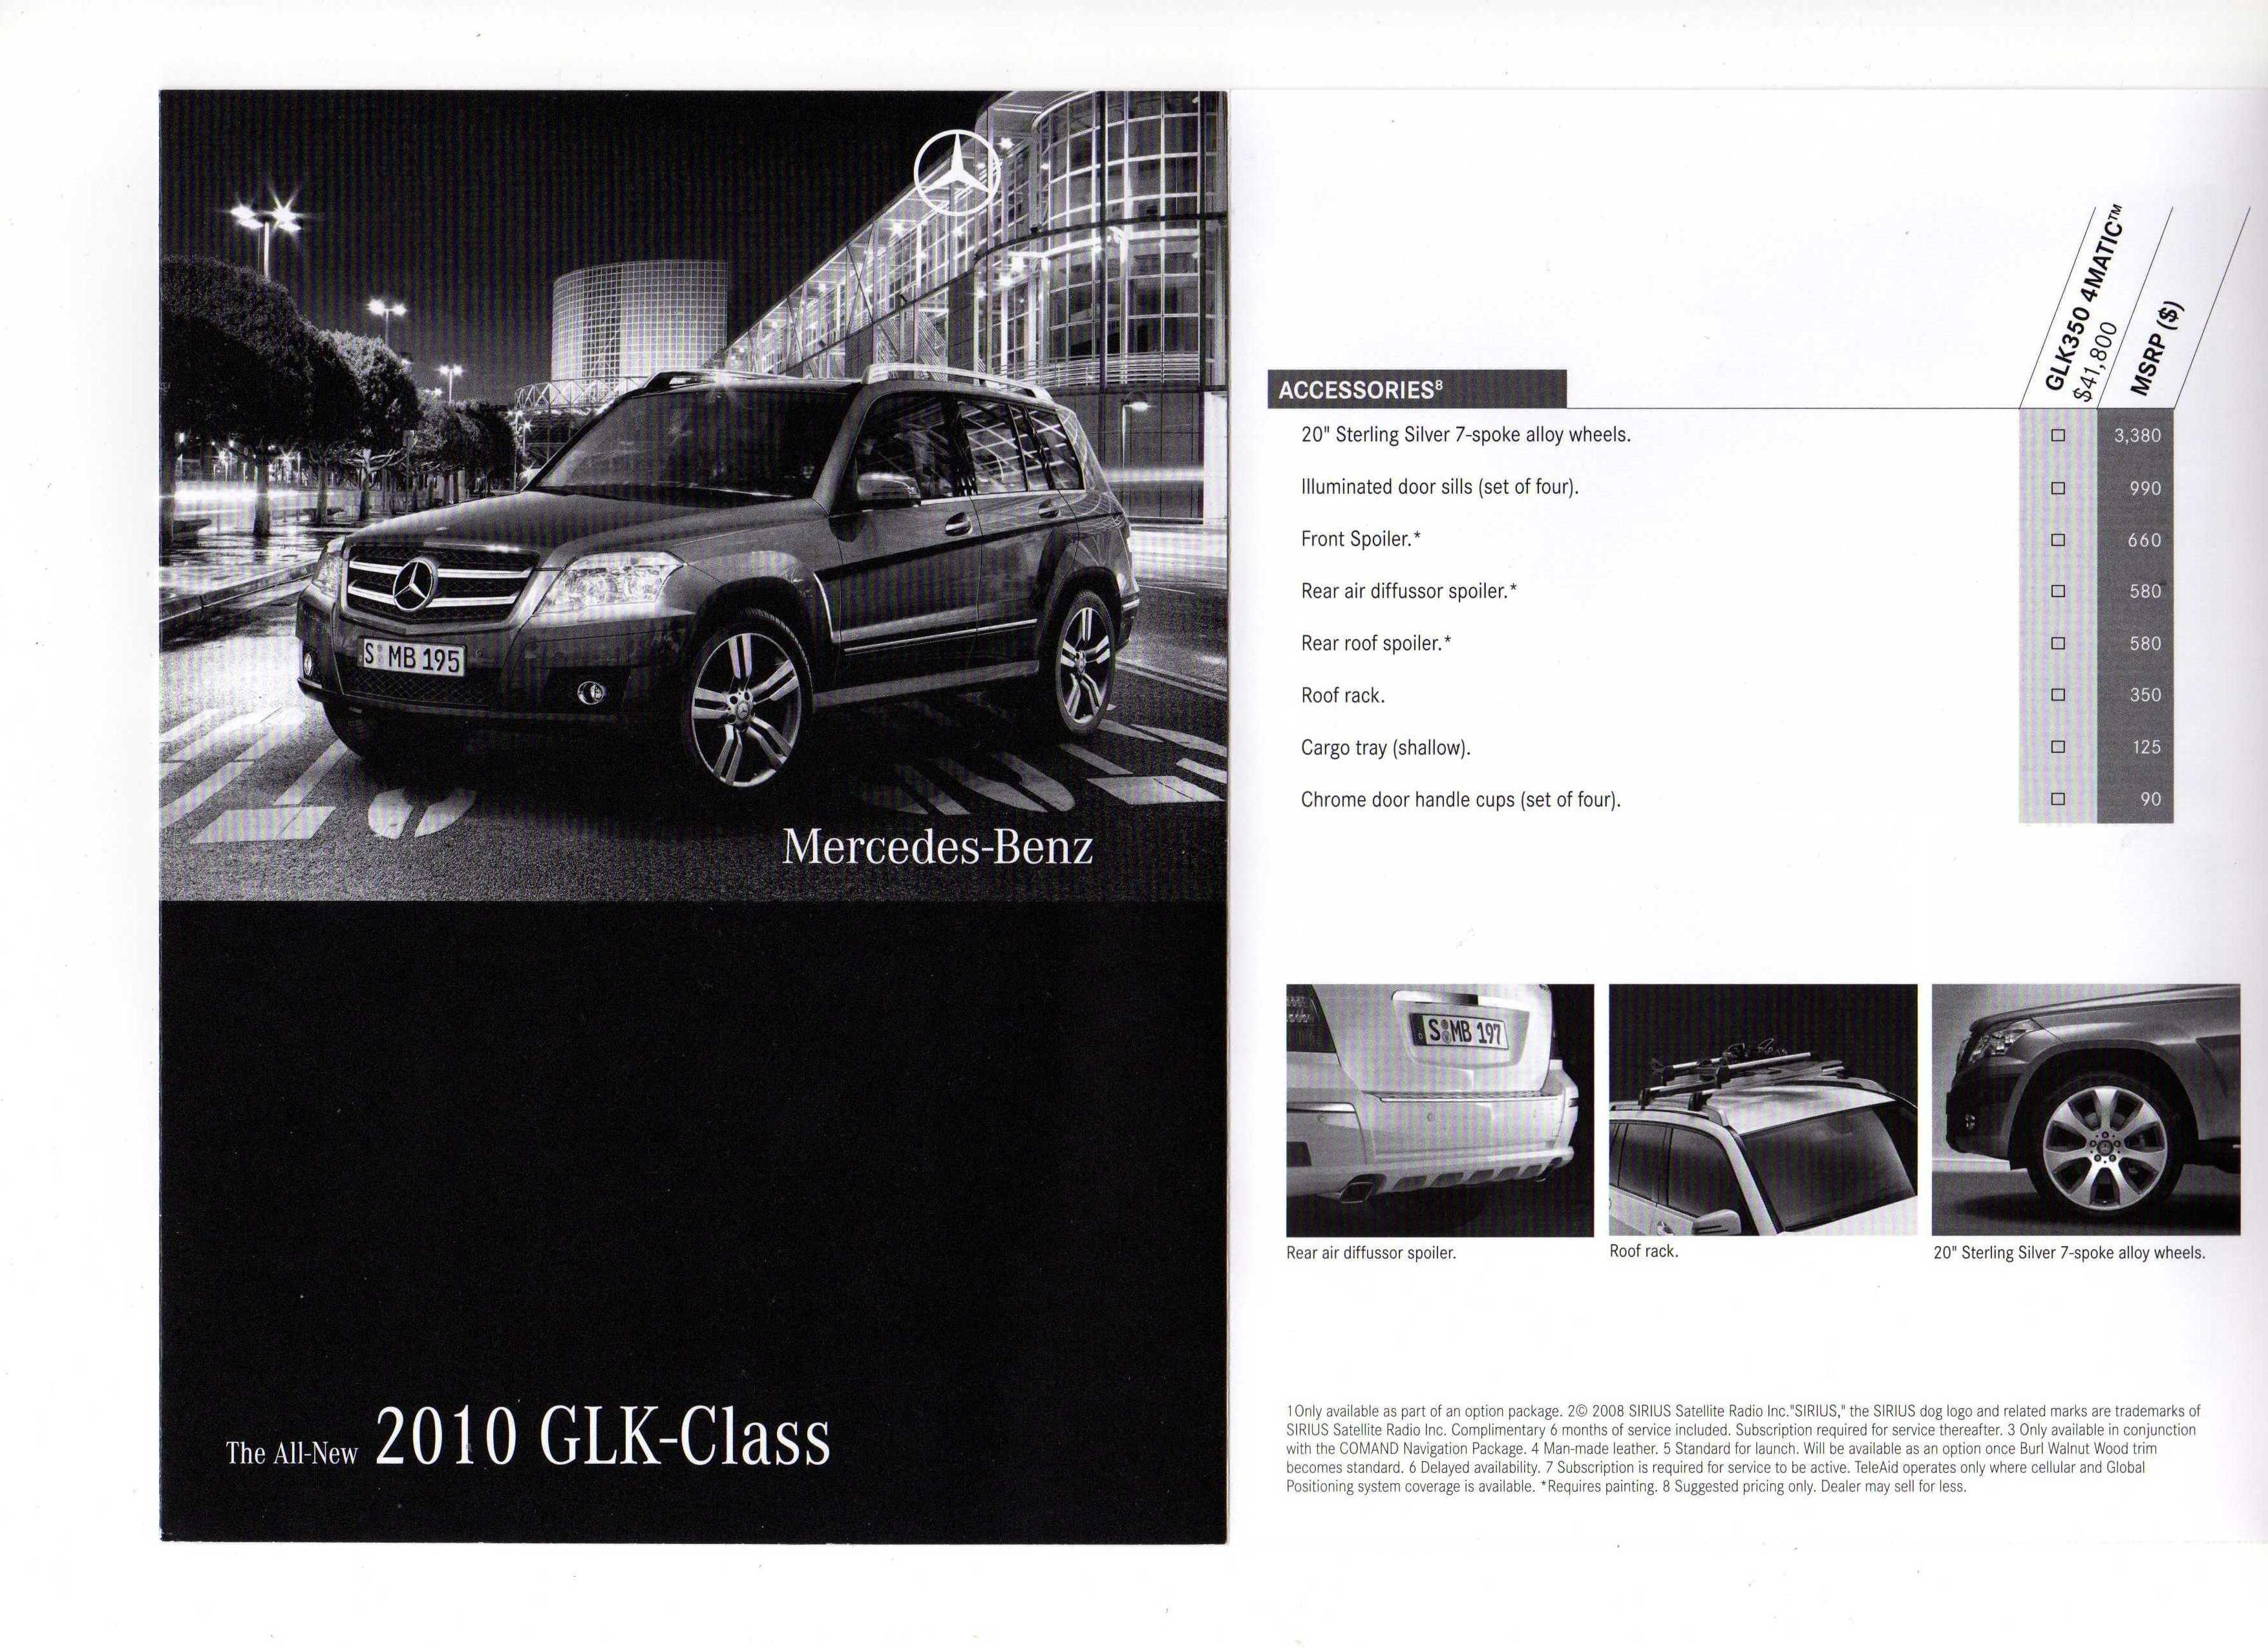 glk1 Just in Time for Christmas, The GLK has Landed